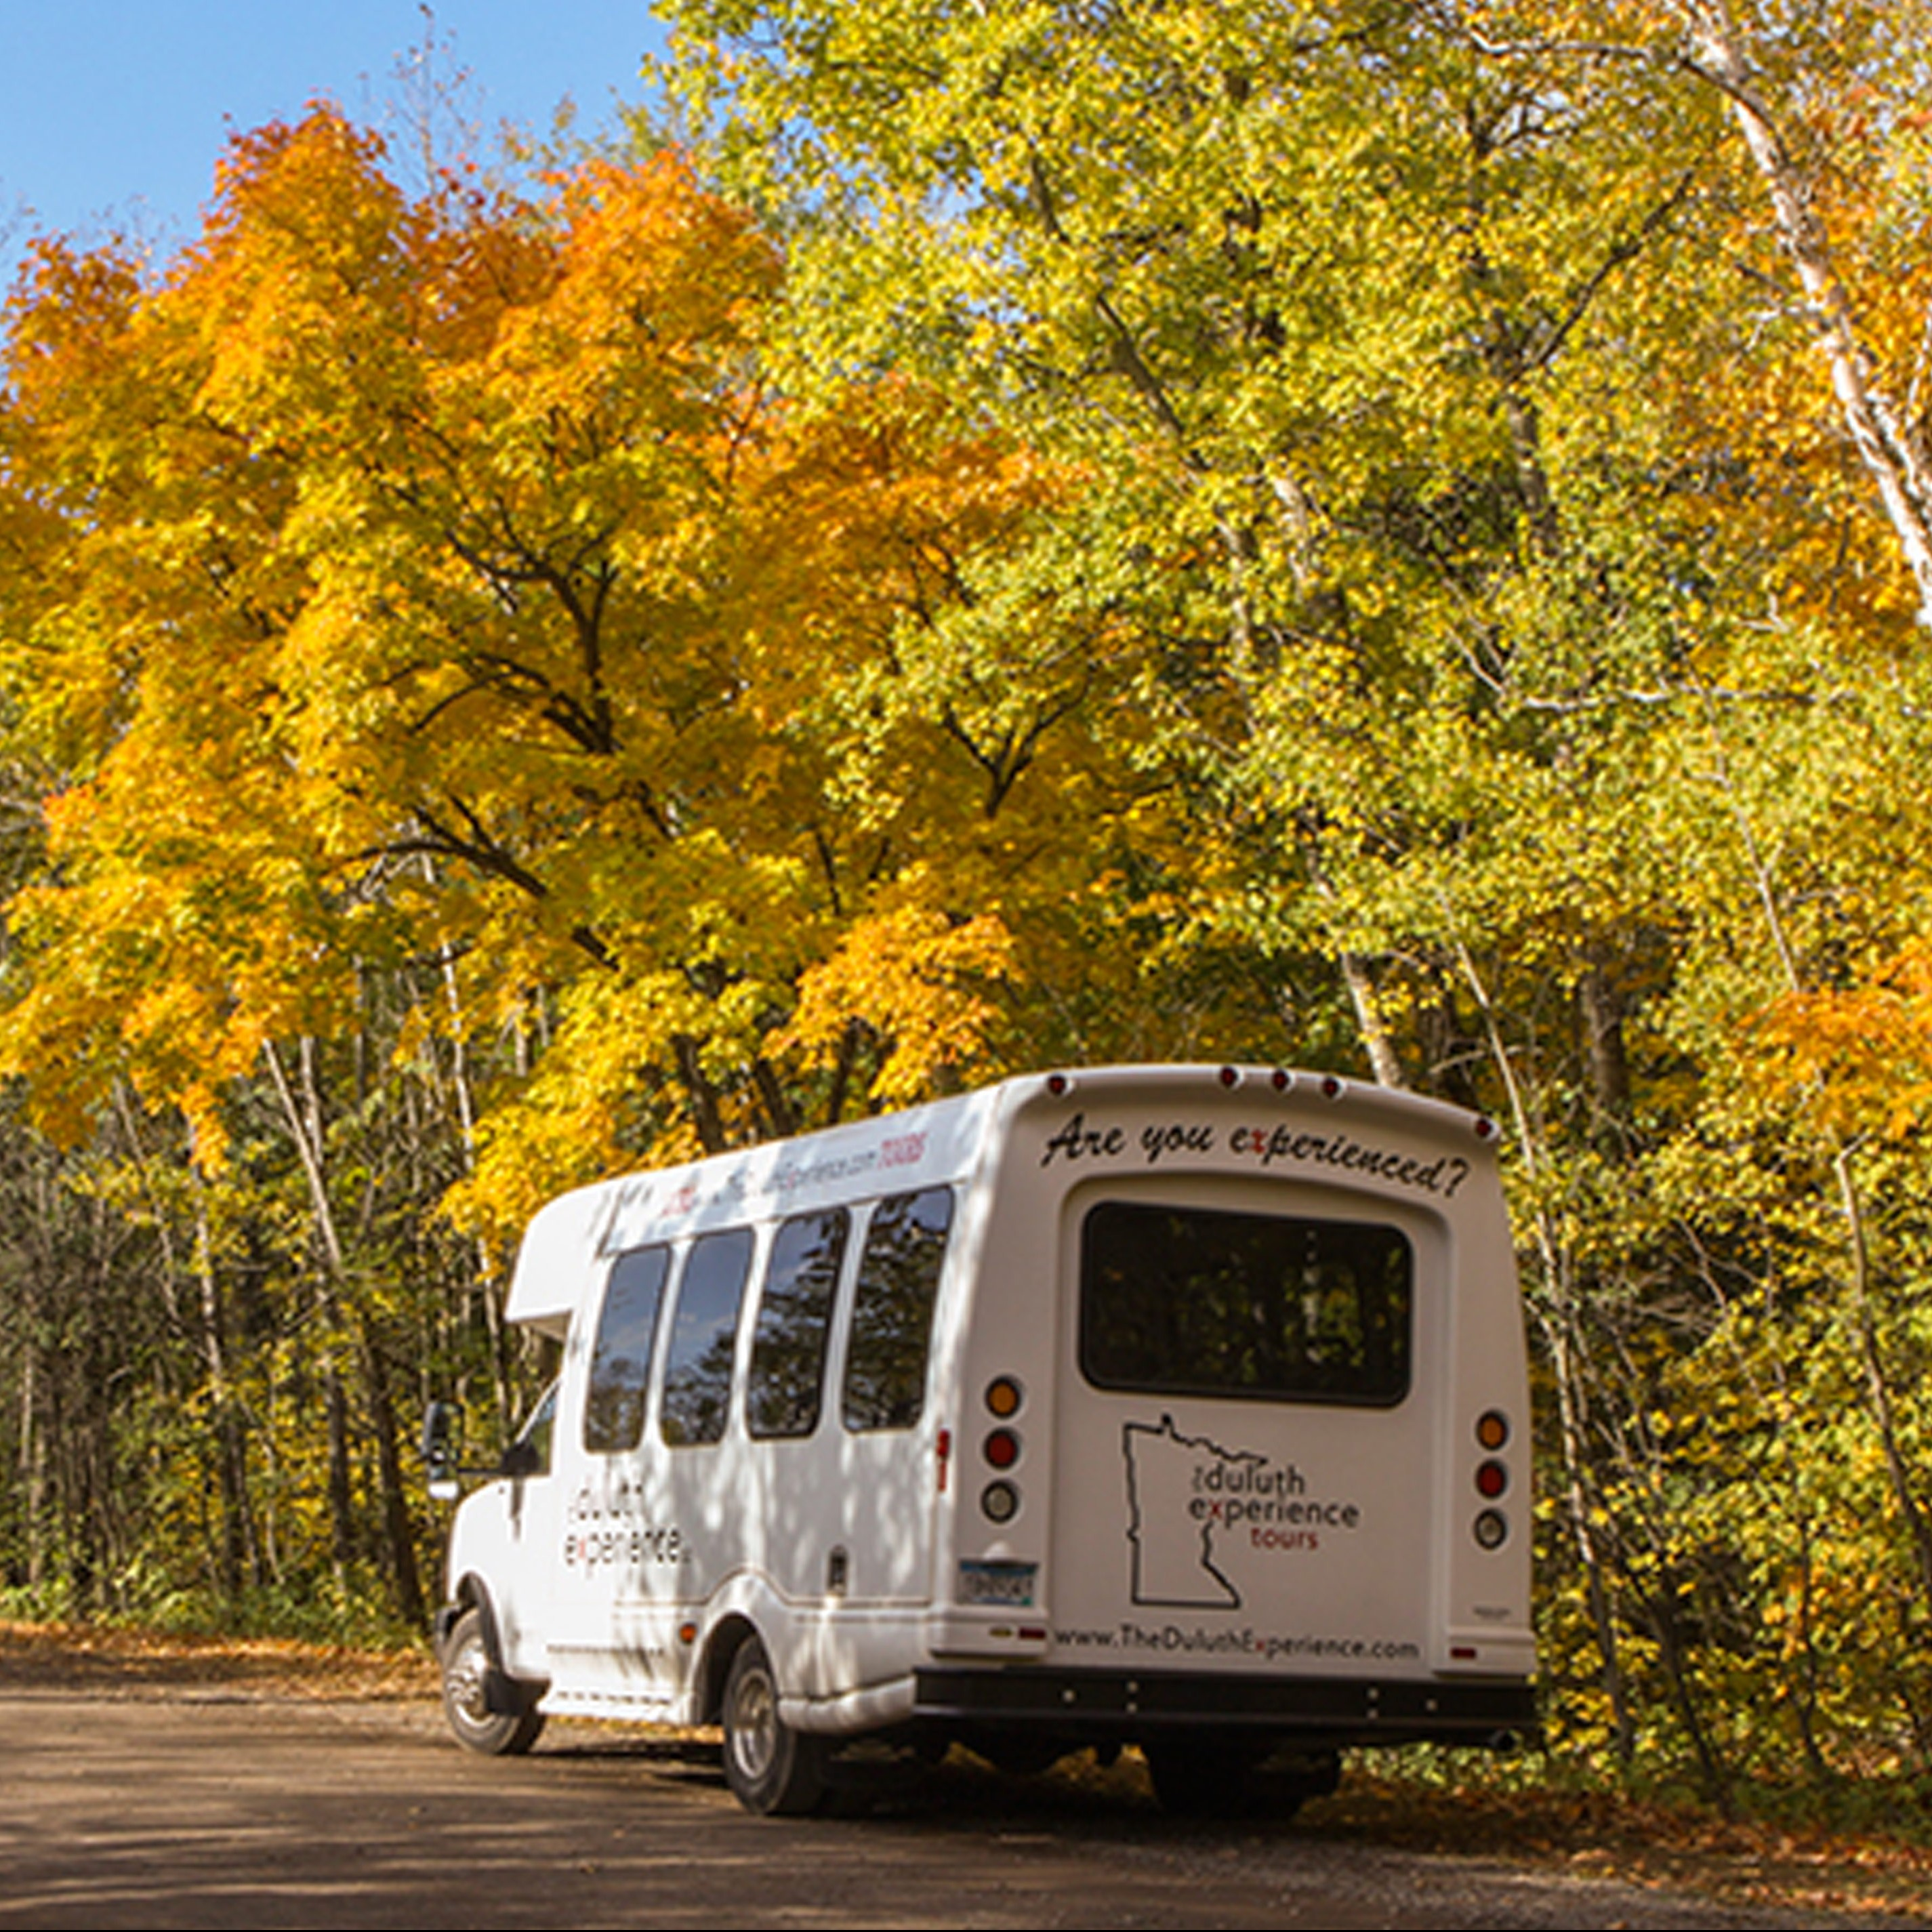 Duluth Experience Tours van during fall